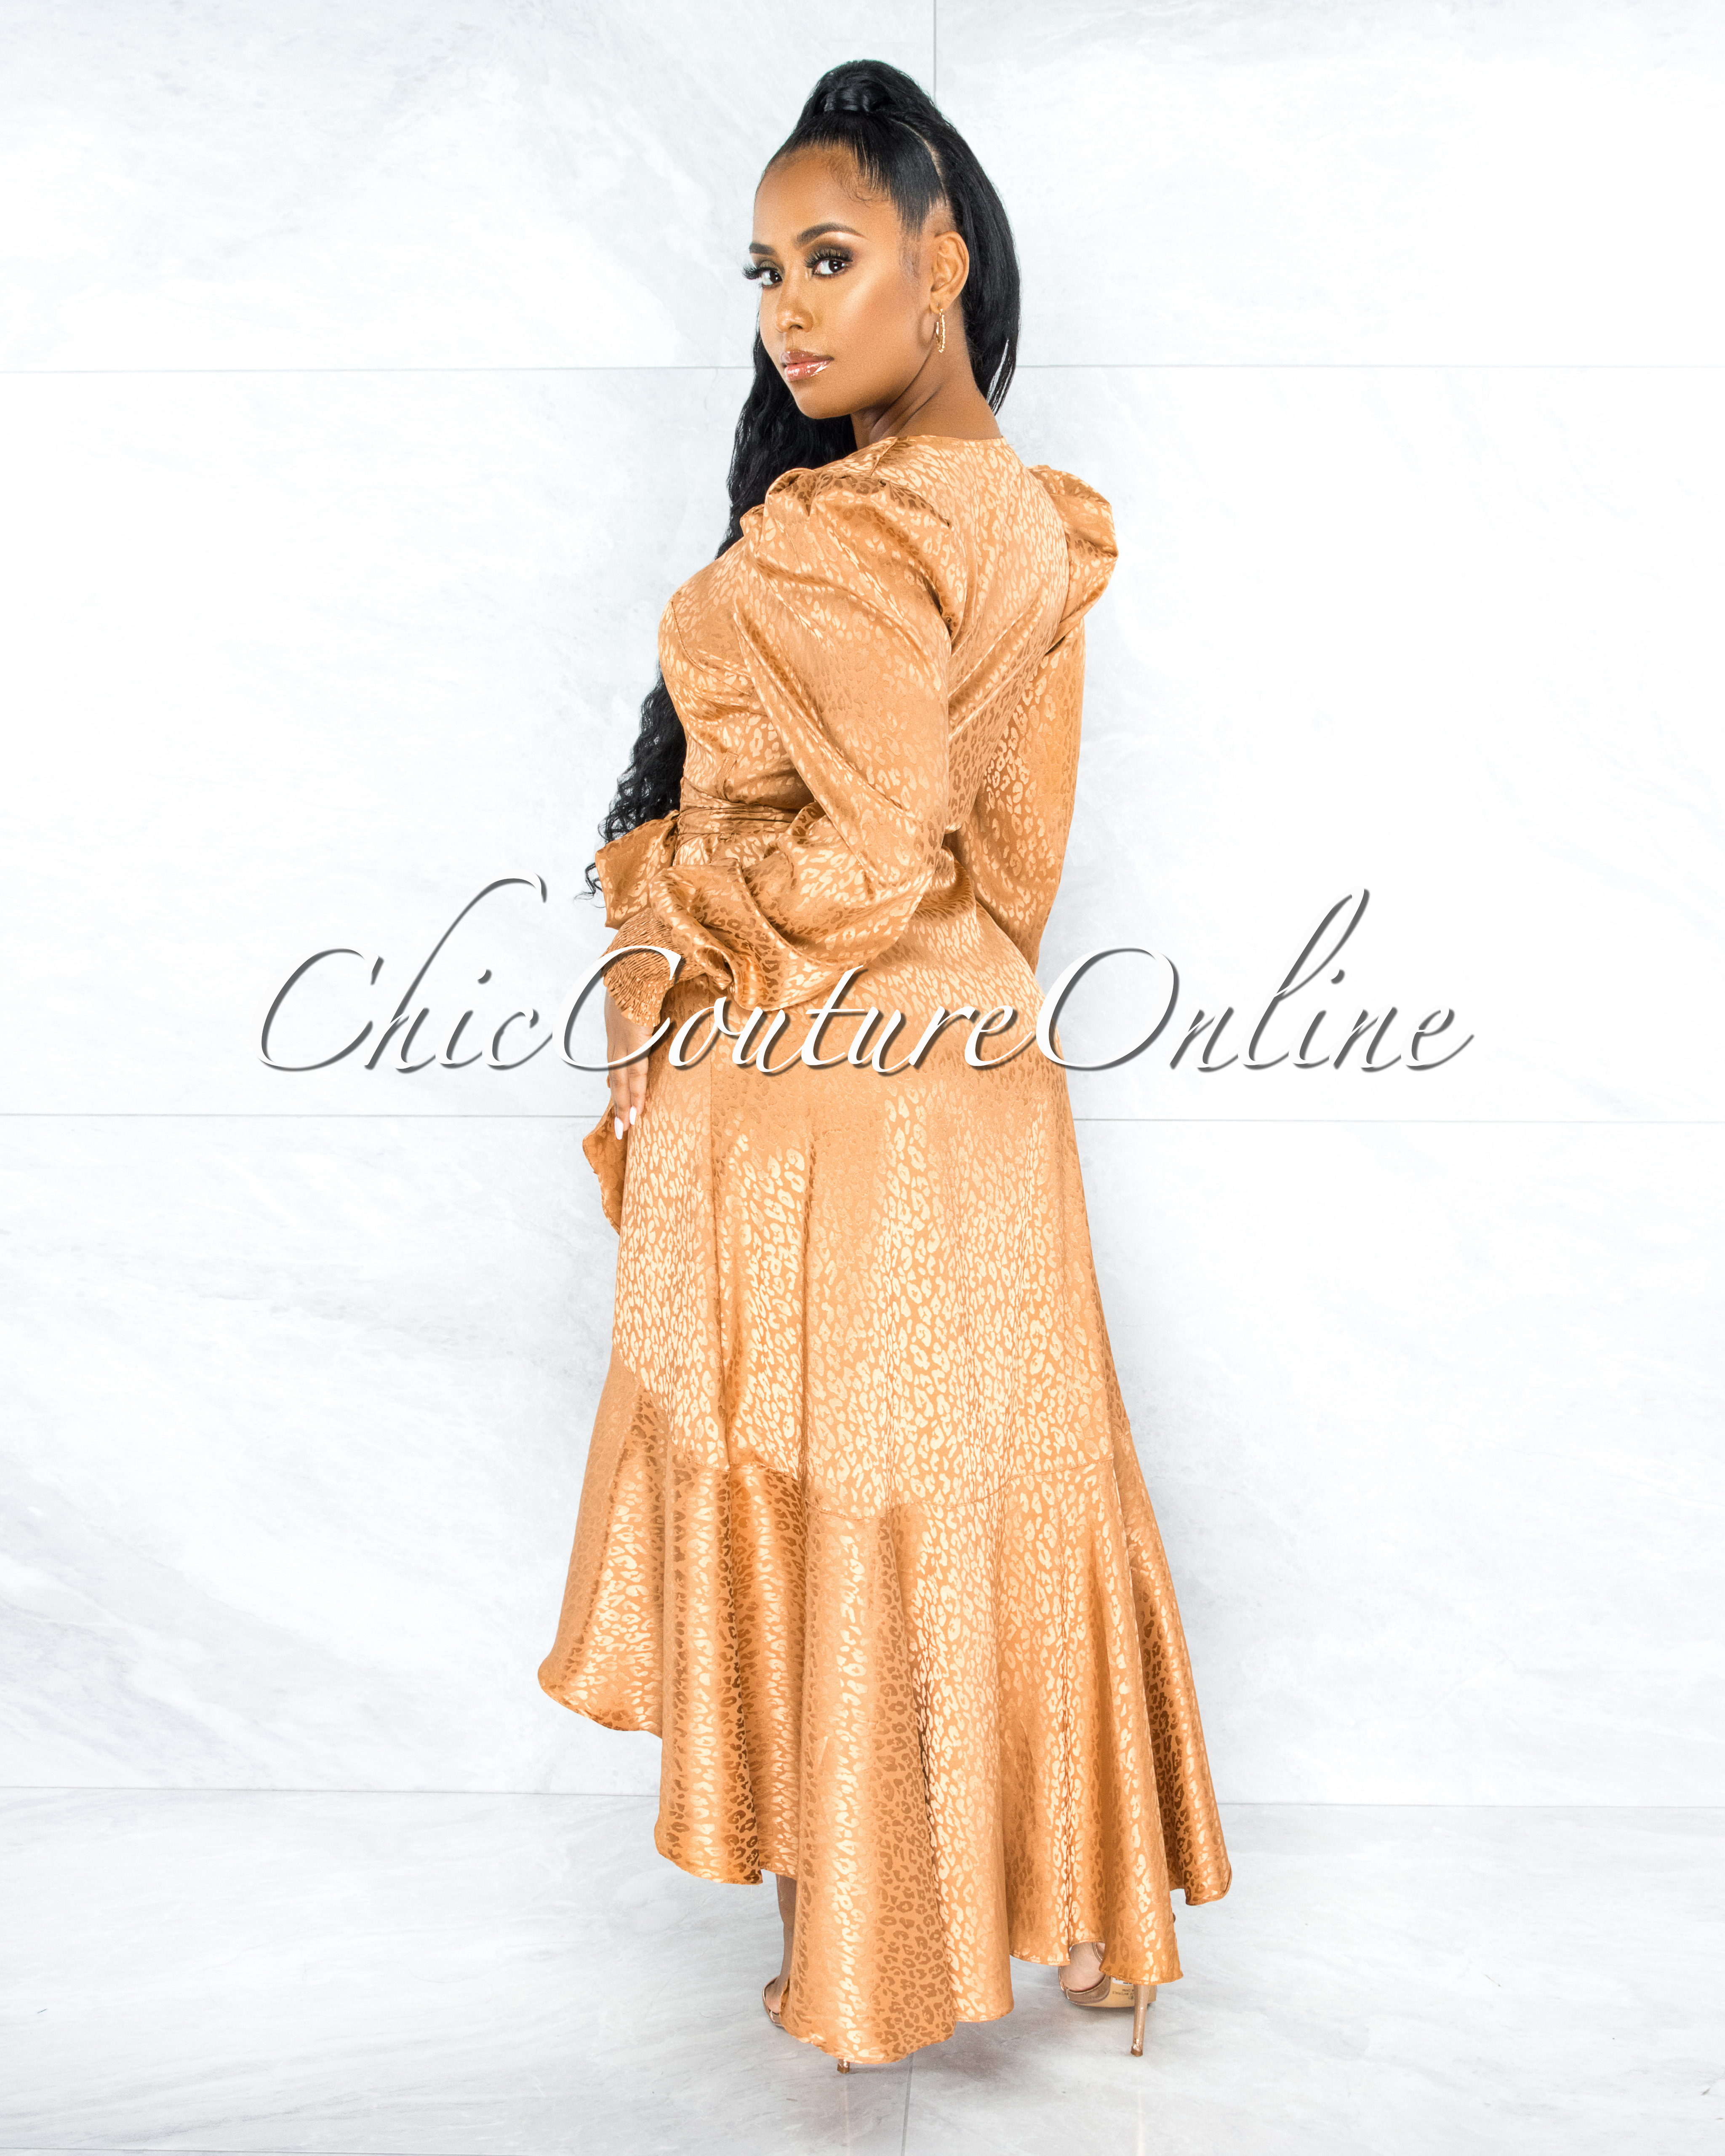 Caprile Gold Leopard Print Satin High Low Ruffle Dress